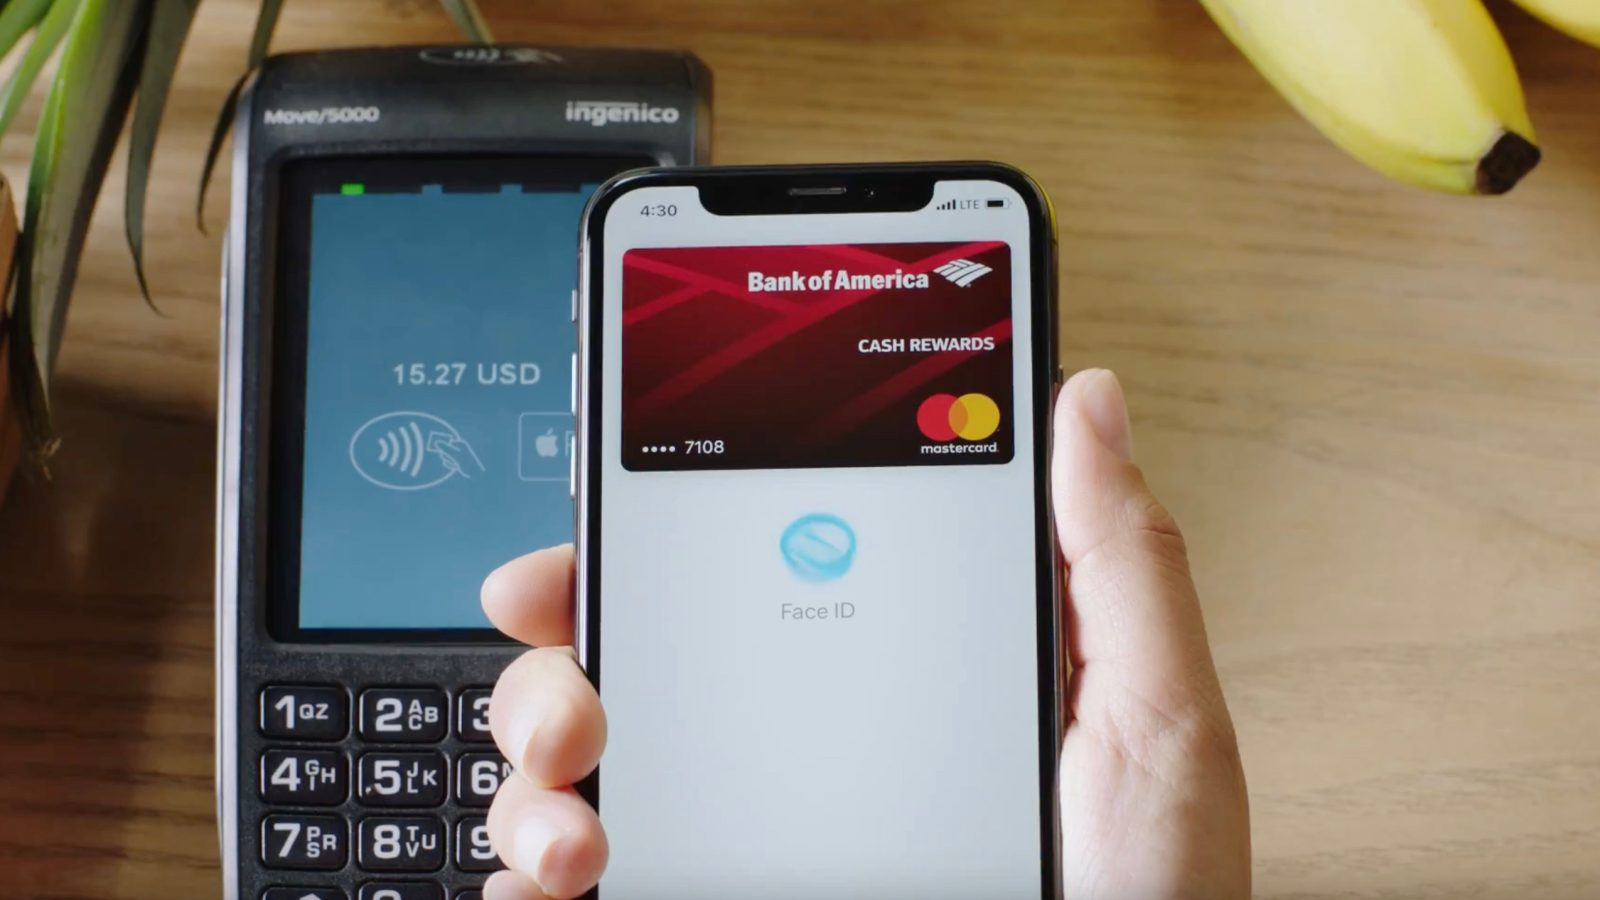 Is it true that to use Apple Pay dangerous?